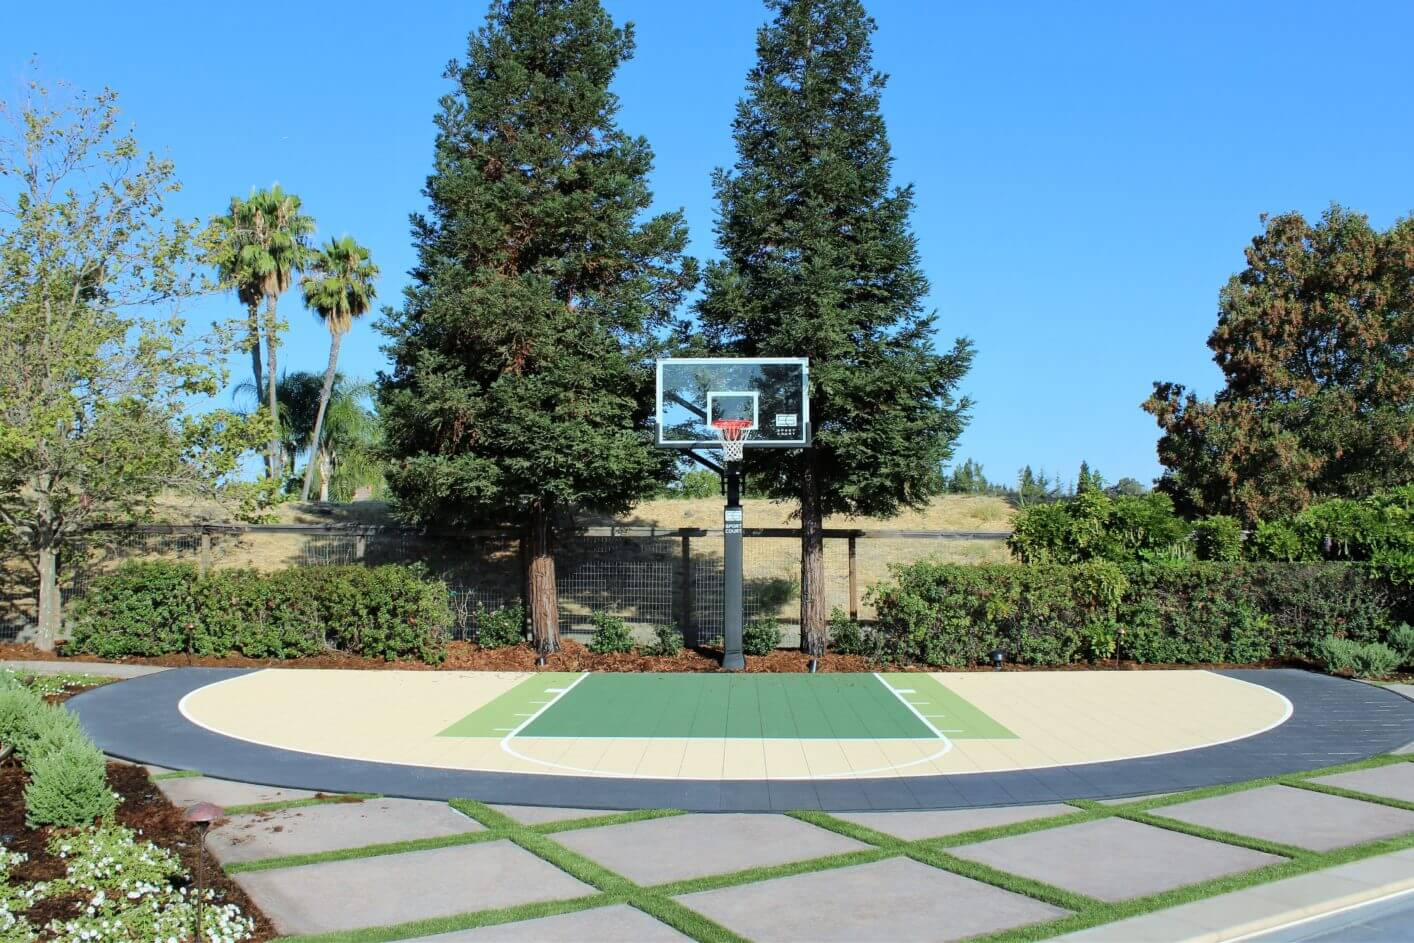 Backyard Basketball Court Sport Court Custom